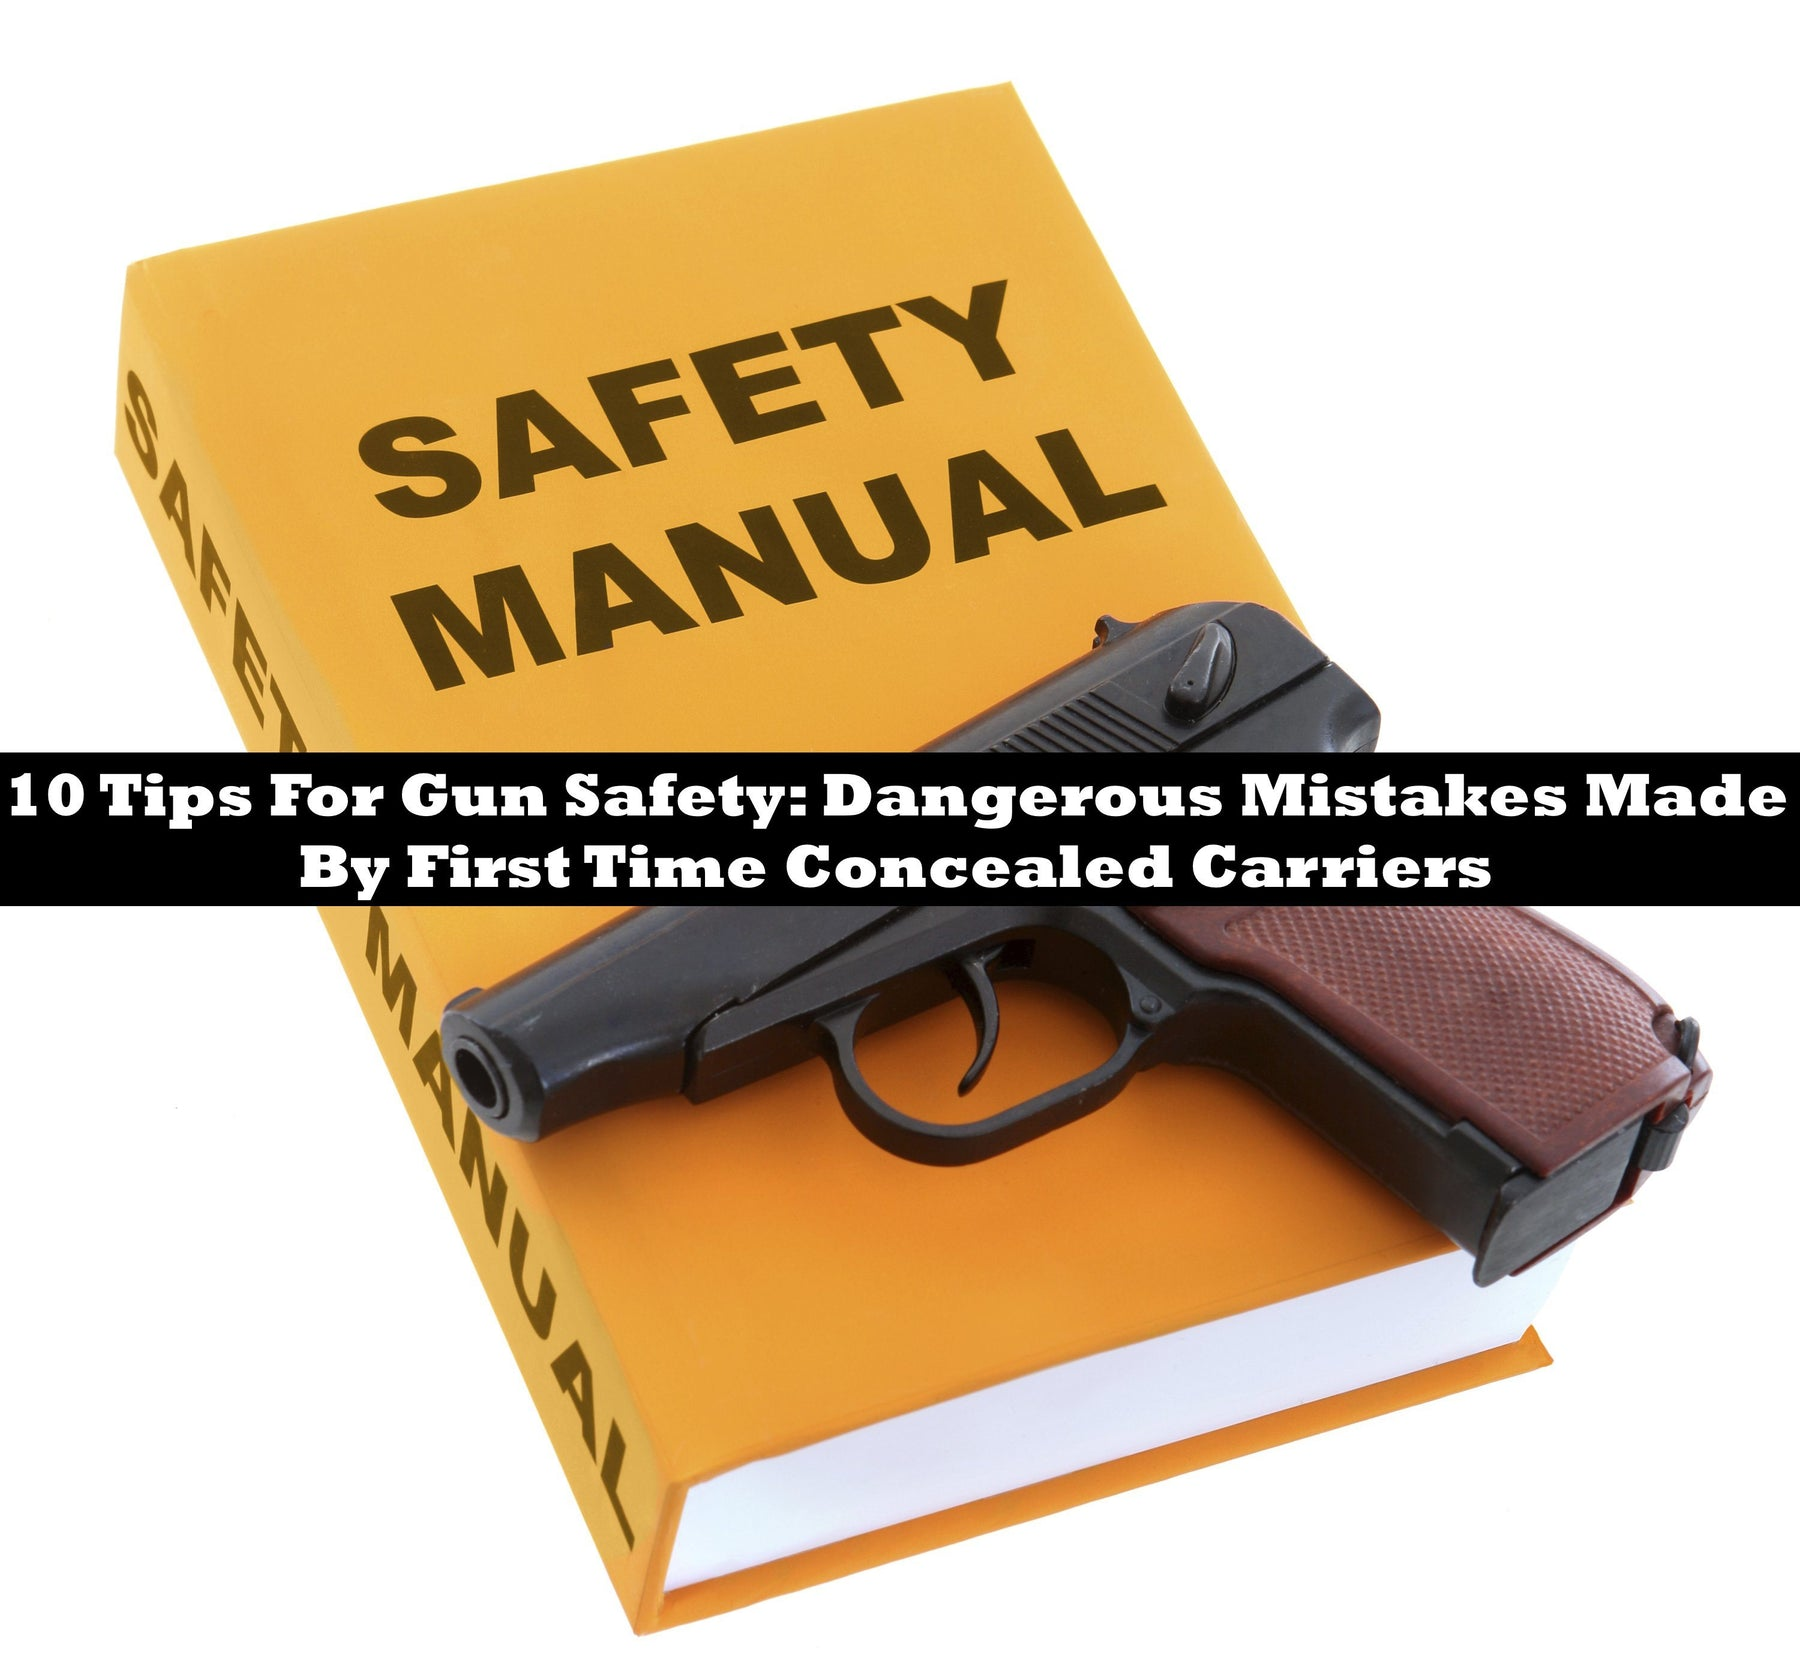 Concealed Carriers Top 10 mistakes